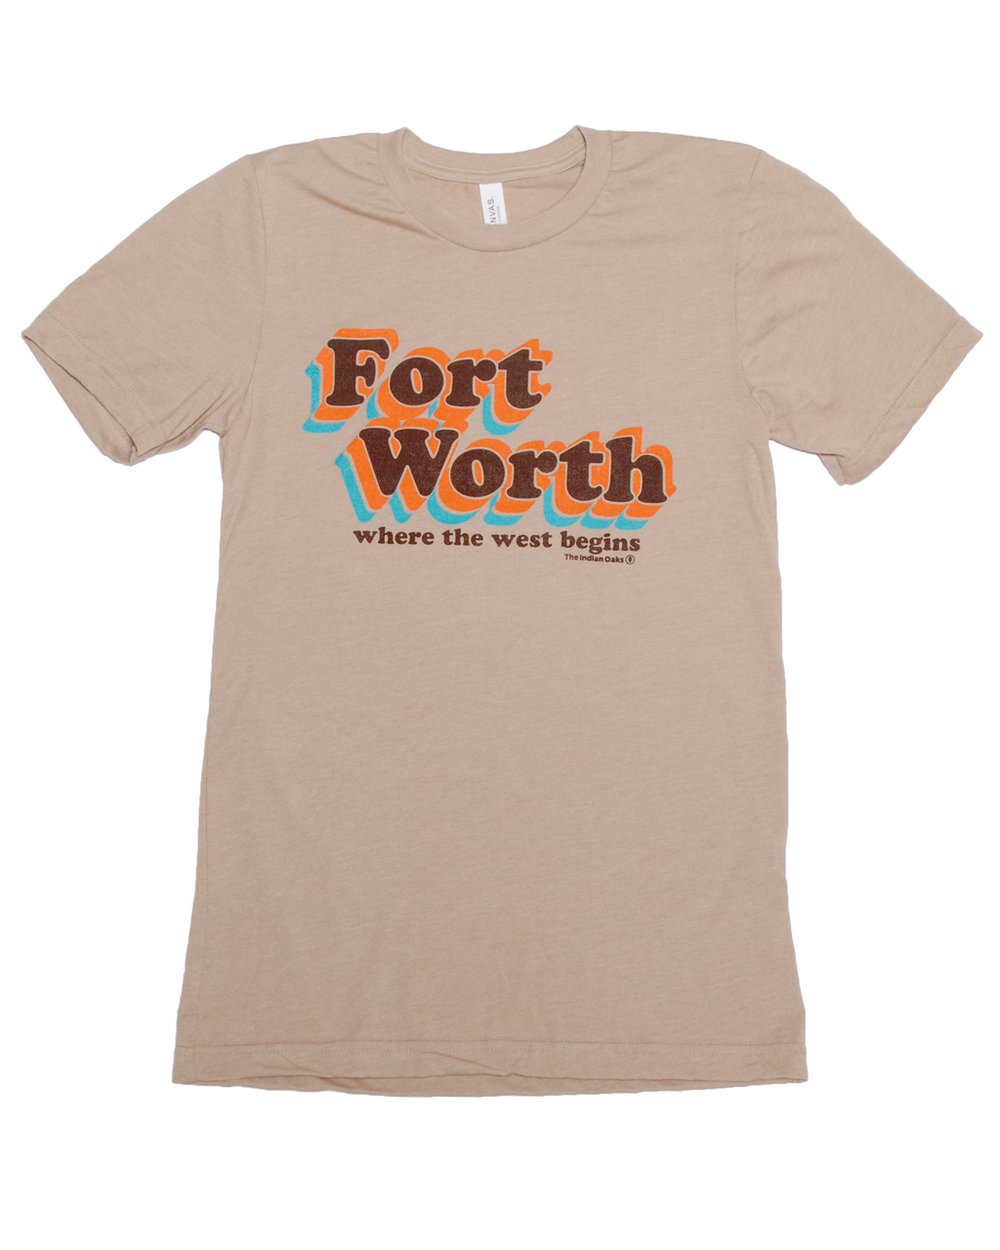 Fort Worth Vintage Shirt u2014 The Indian Oaks